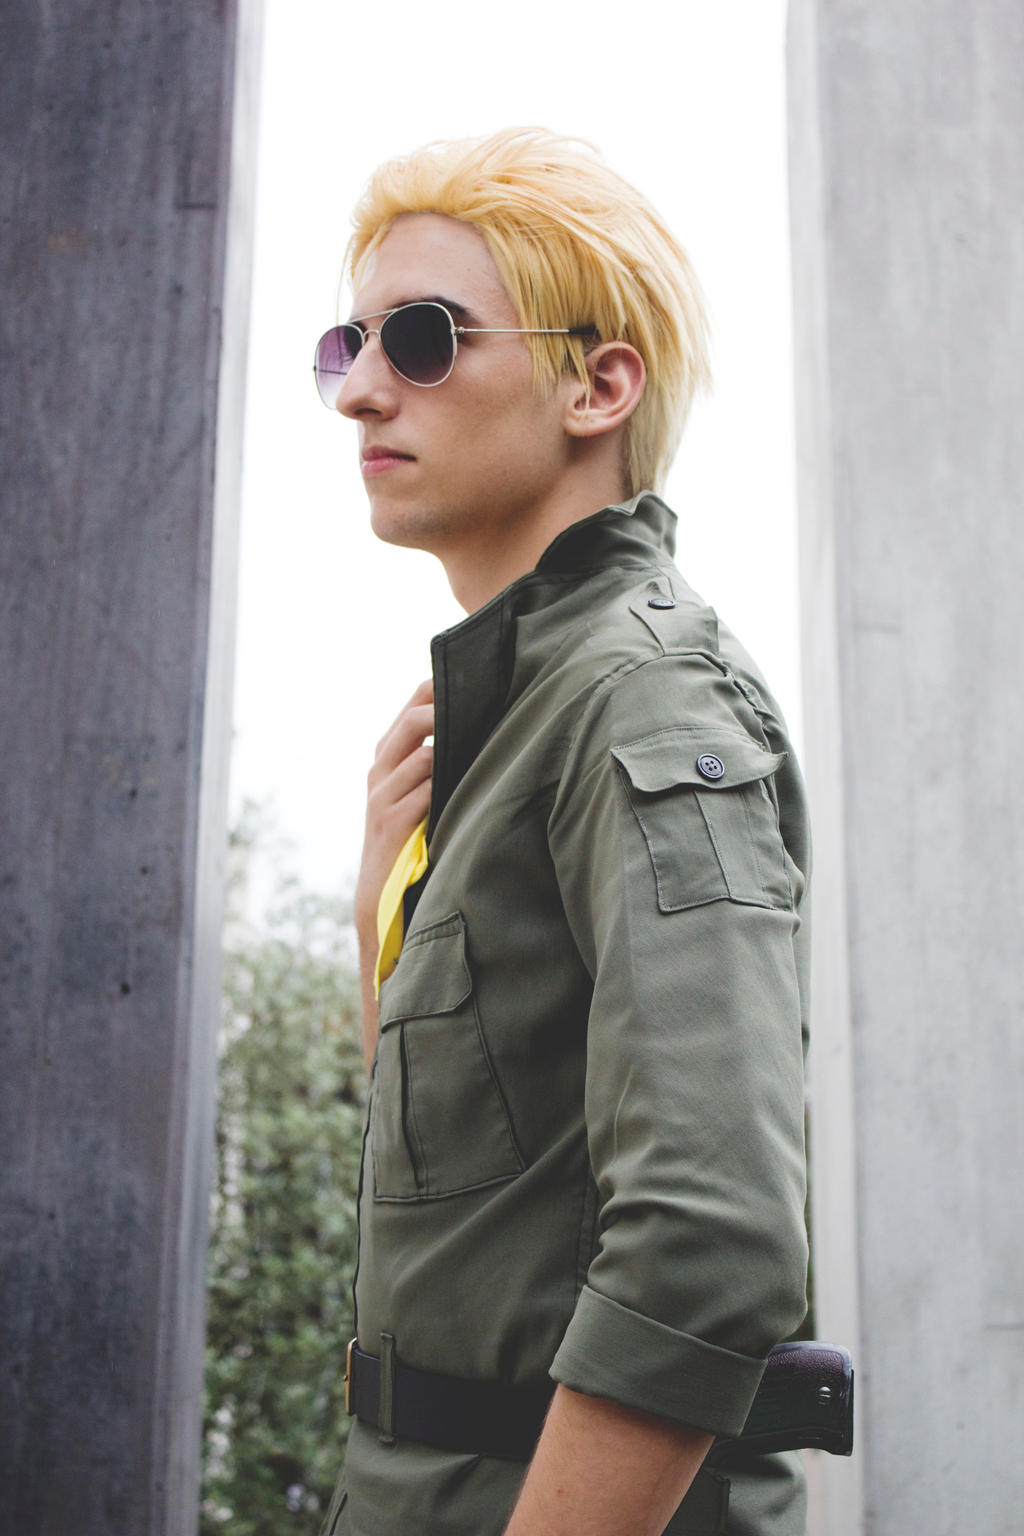 Kazuhira Miller Cosplay Mgs Peace Walker By Duxdante On Deviantart Tumblr is a place to express yourself, discover yourself, and bond over the stuff you love. kazuhira miller cosplay mgs peace